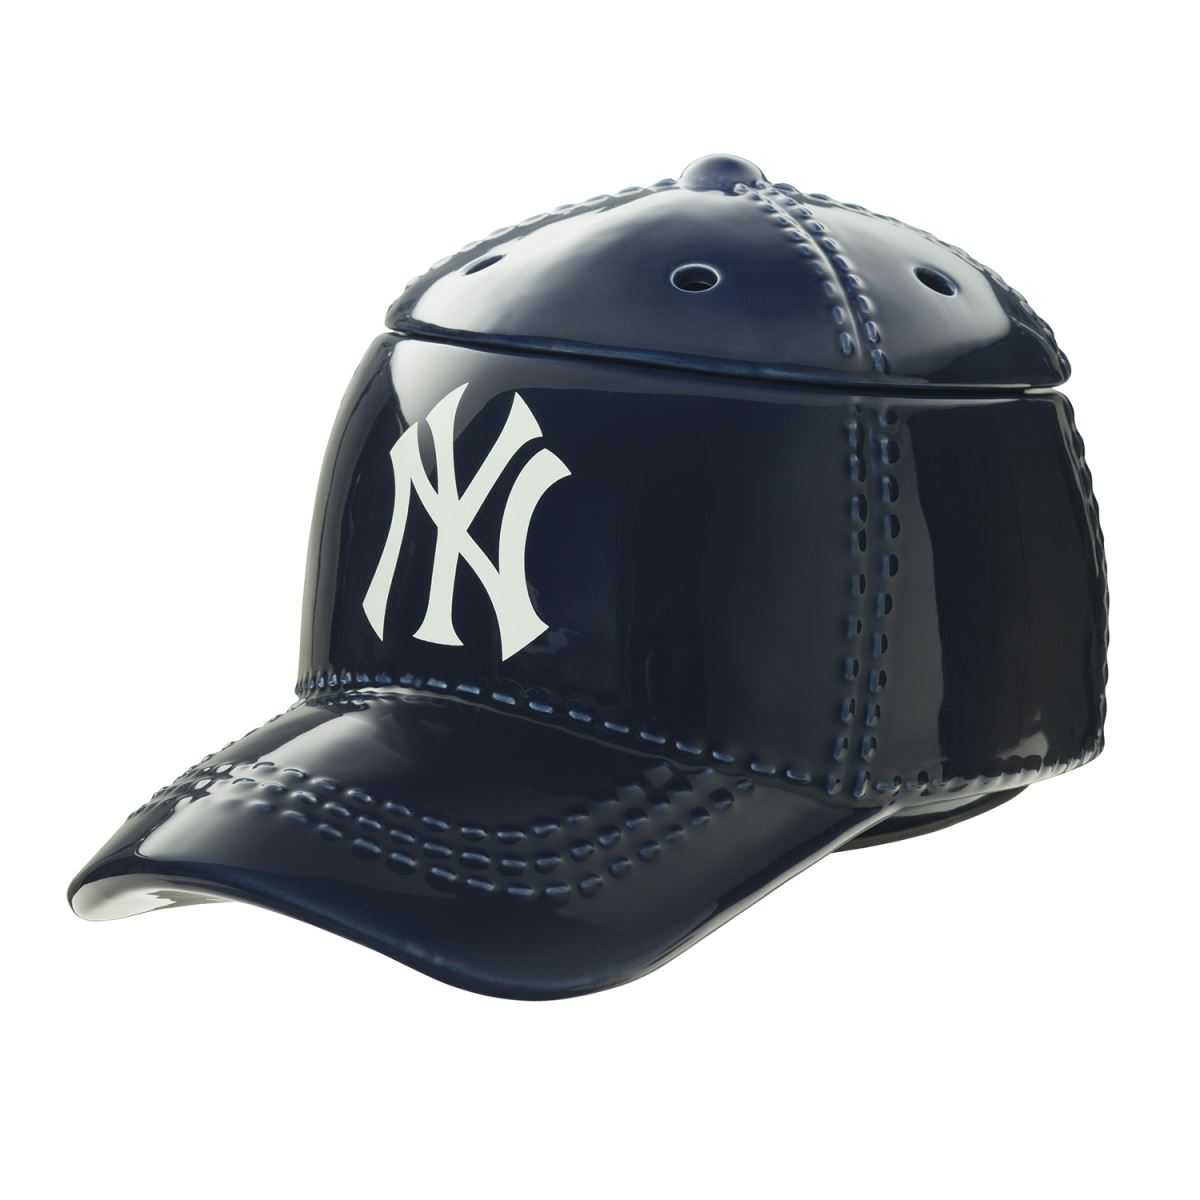 NEW YORK Y BASEBALL CAP SCENTSY WARMER | DISCONTINUED ON SALE